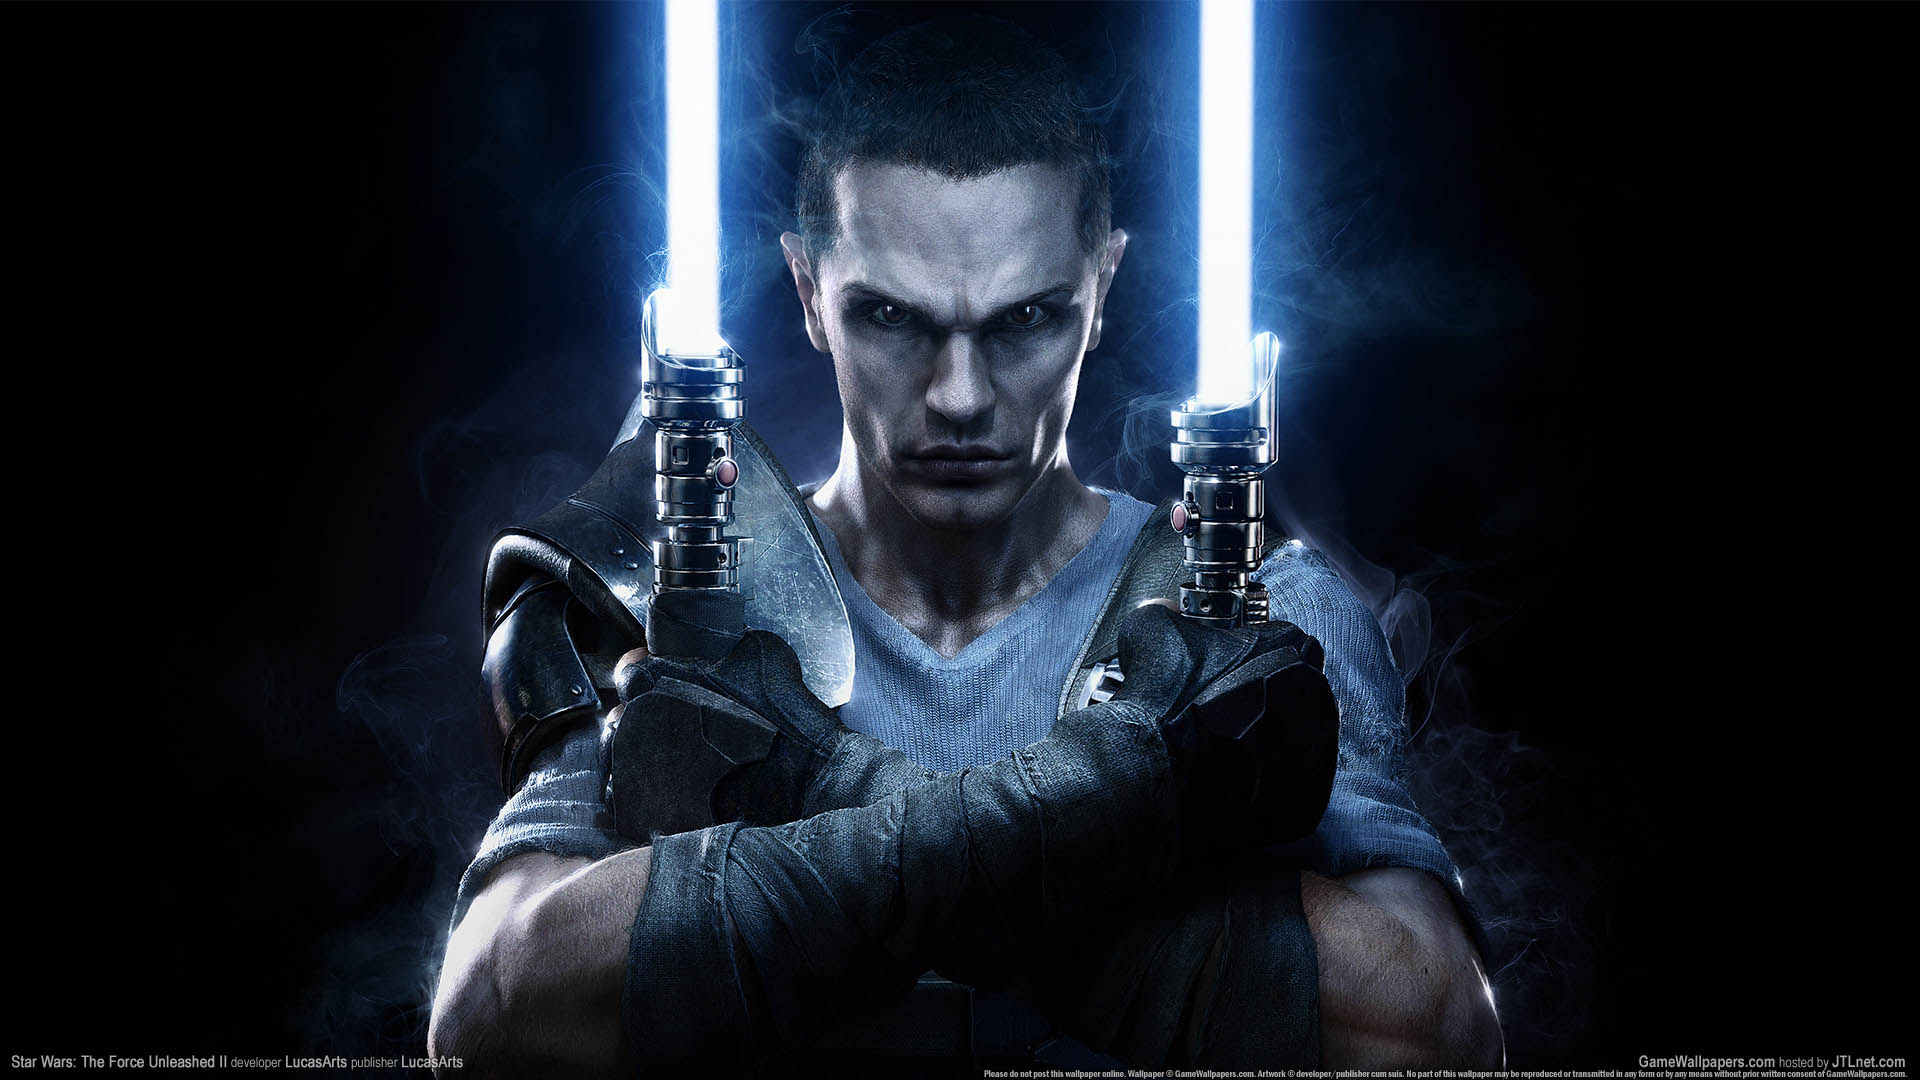 star wars: the force unleashed 2 wallpapers or desktop backgrounds